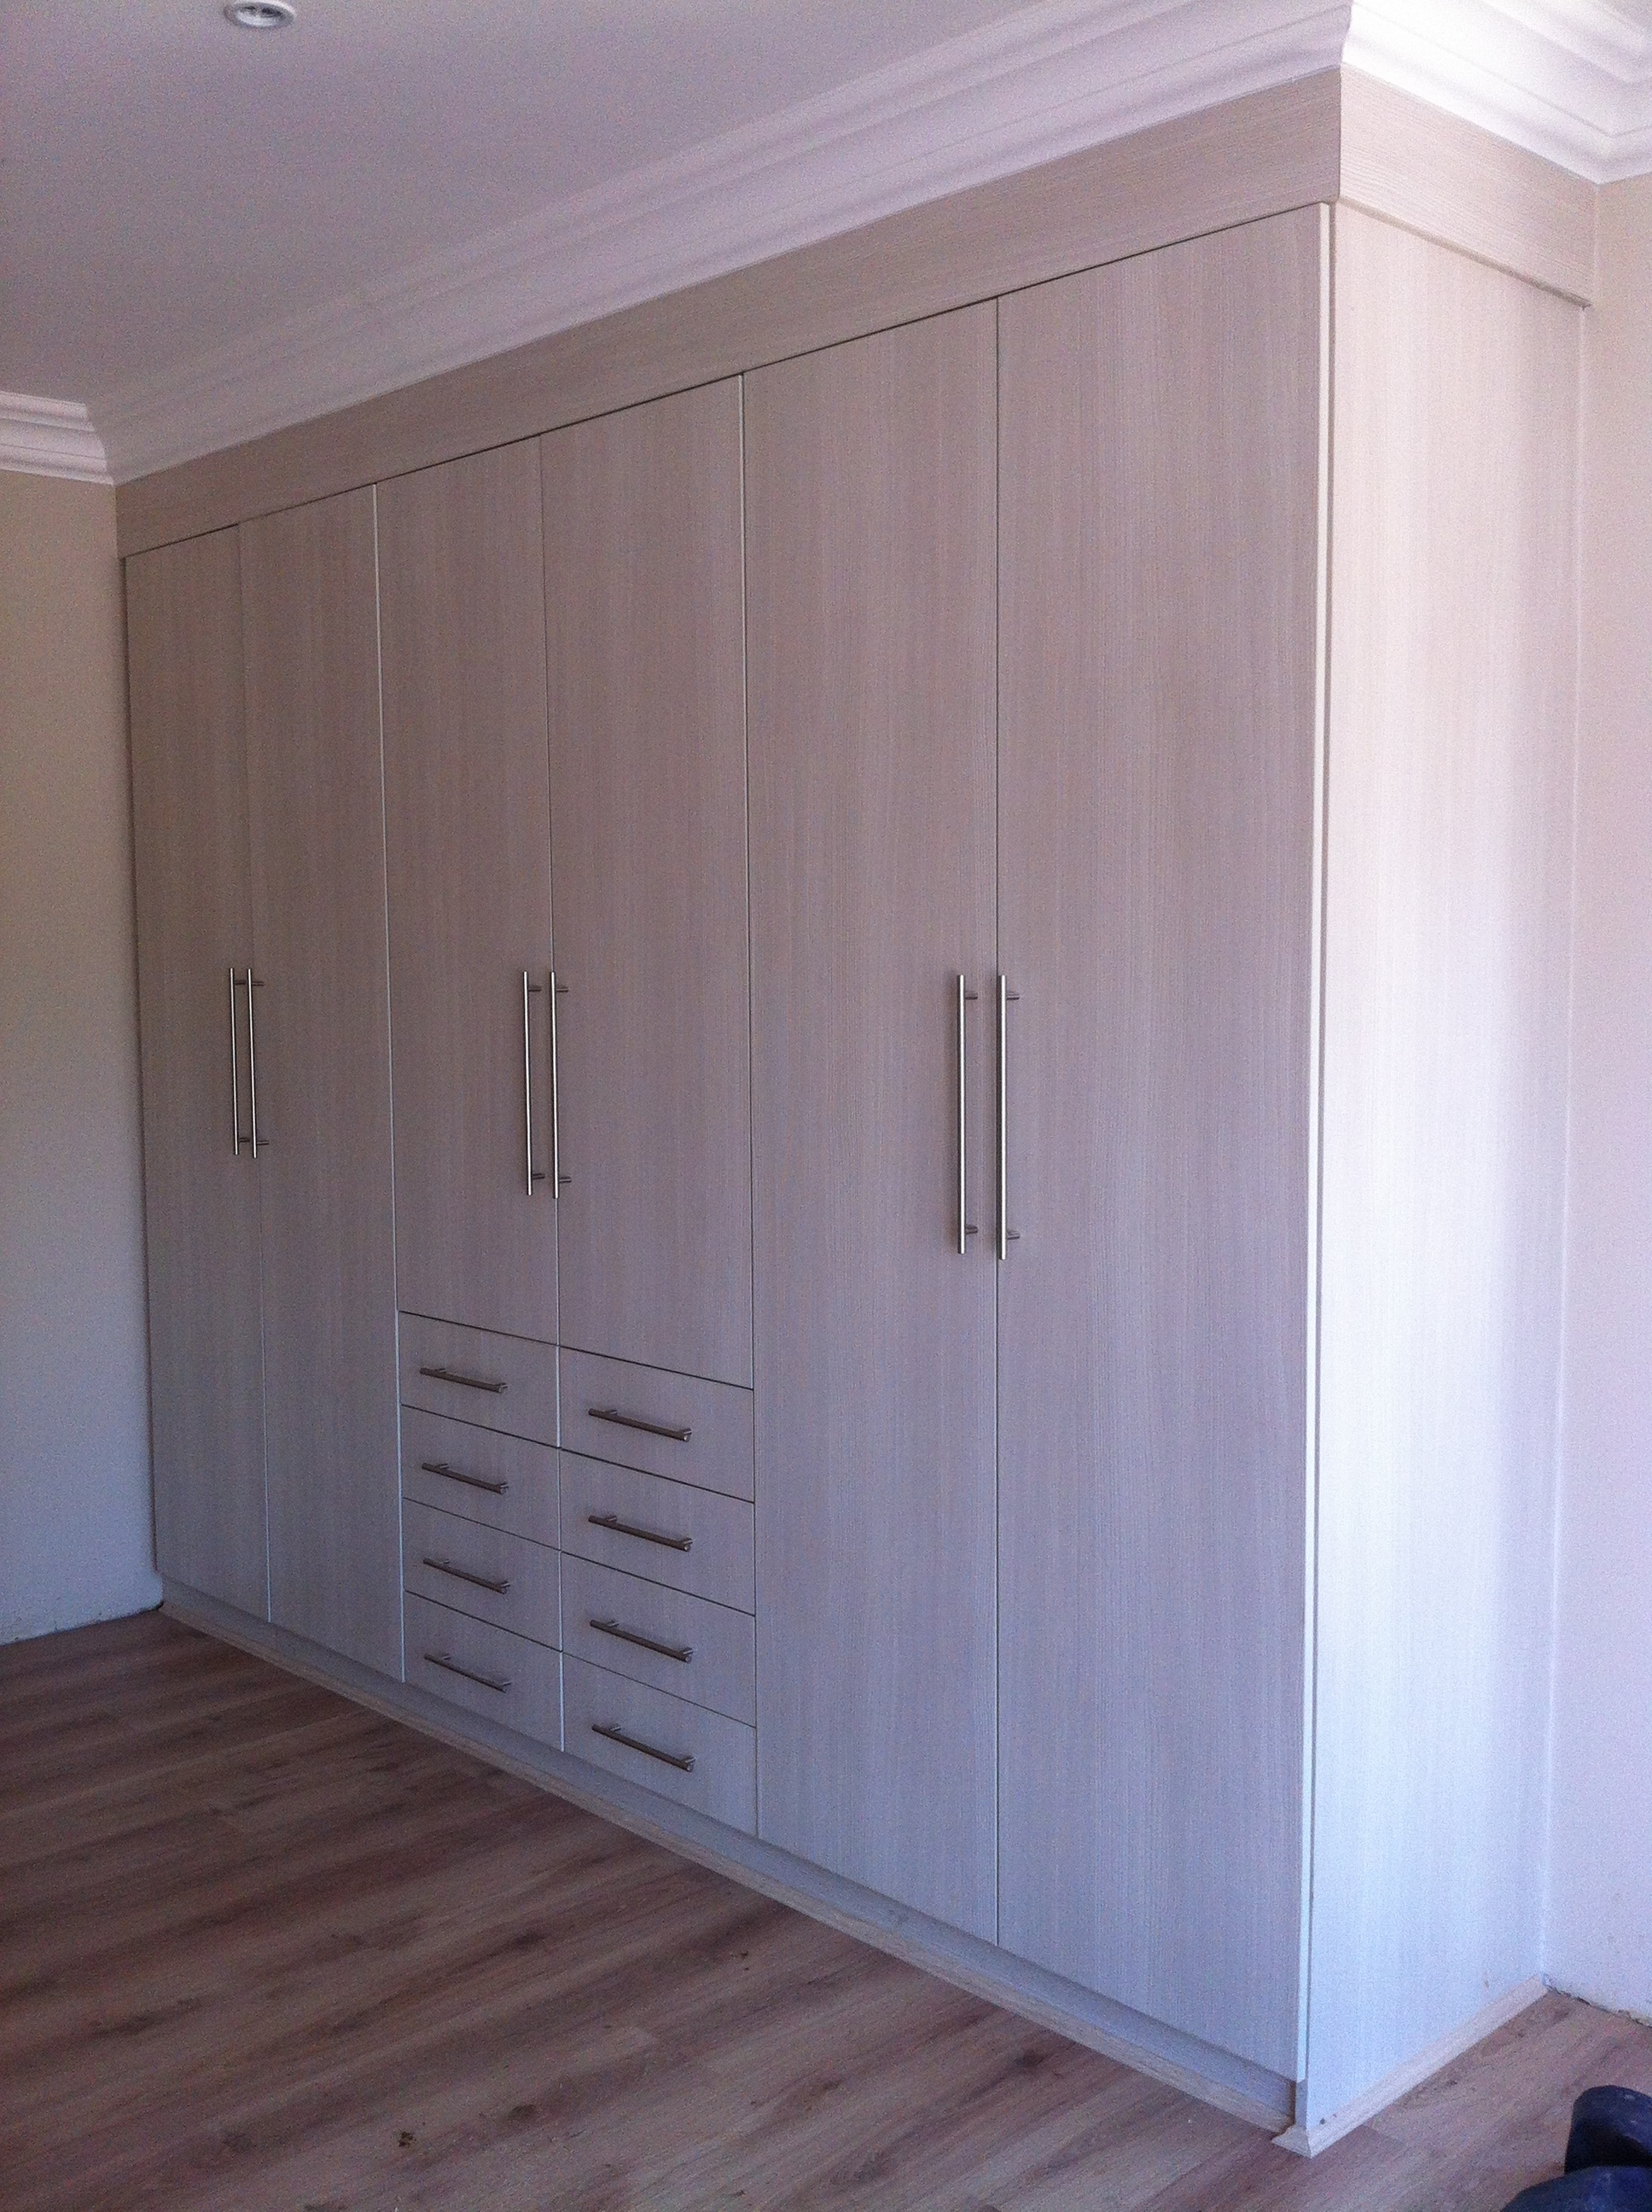 Newest Built In Cupboard – The Woodworker Pertaining To Built In Cupboards (View 12 of 15)